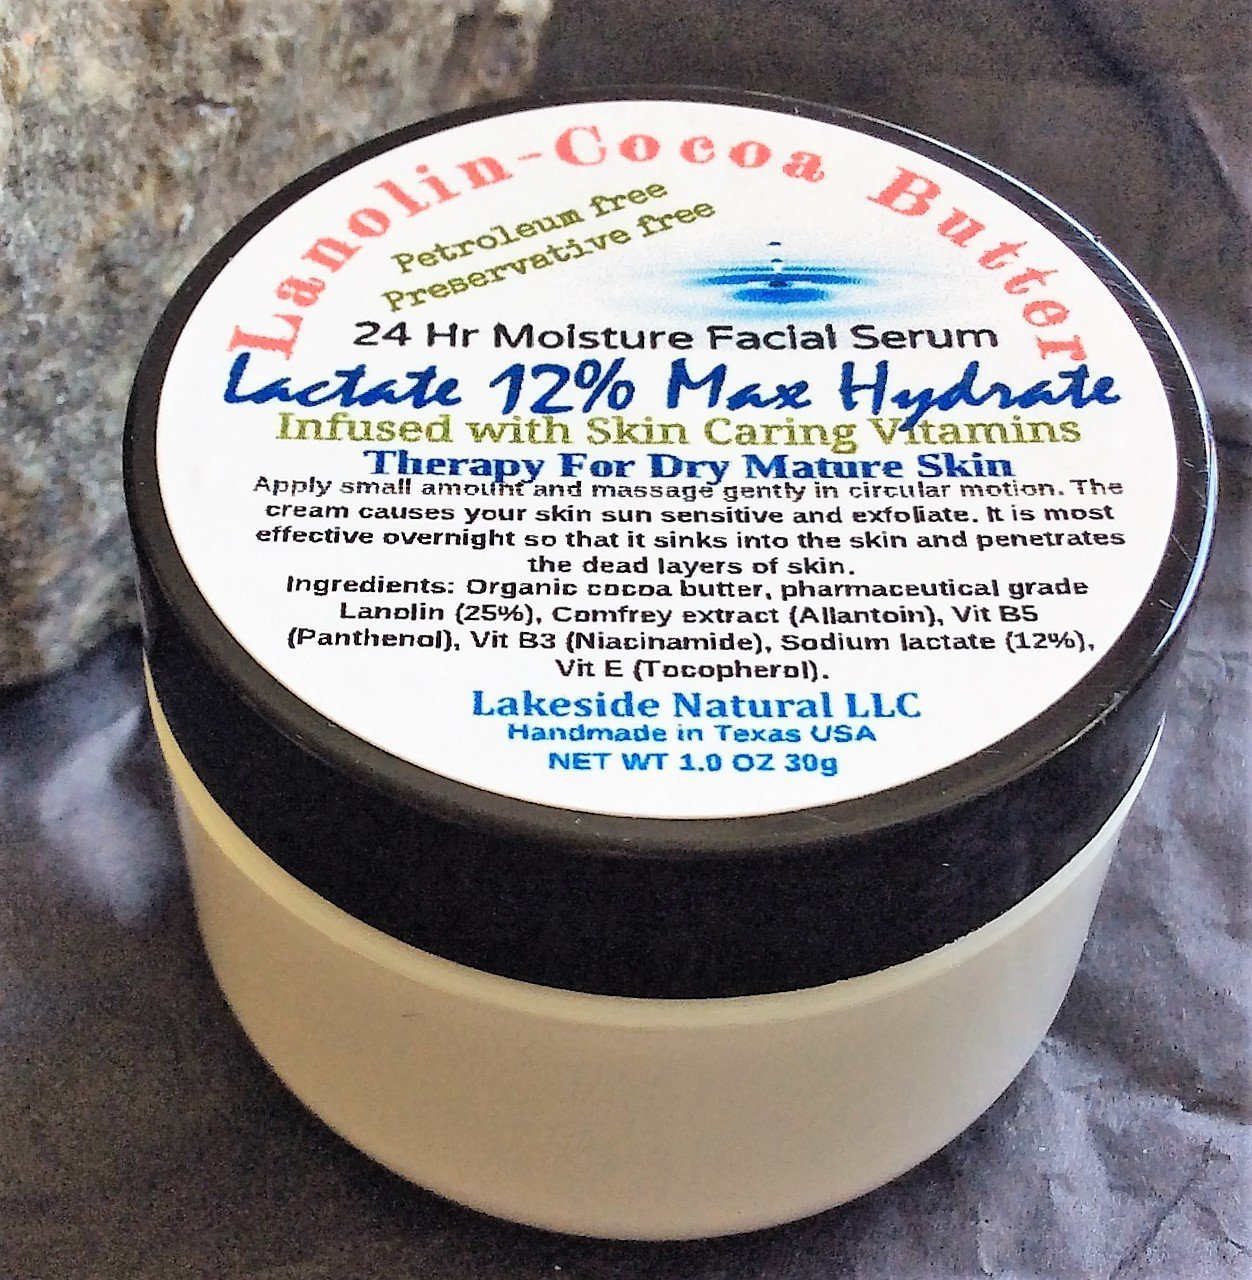 Max Hydra Lactate Lotion 12% with Lanolin & Cocoa Butter Cream for Skin - All Natural Therapy for Extremely Dry Cracked Skin by Lakeside Natural Apothecary